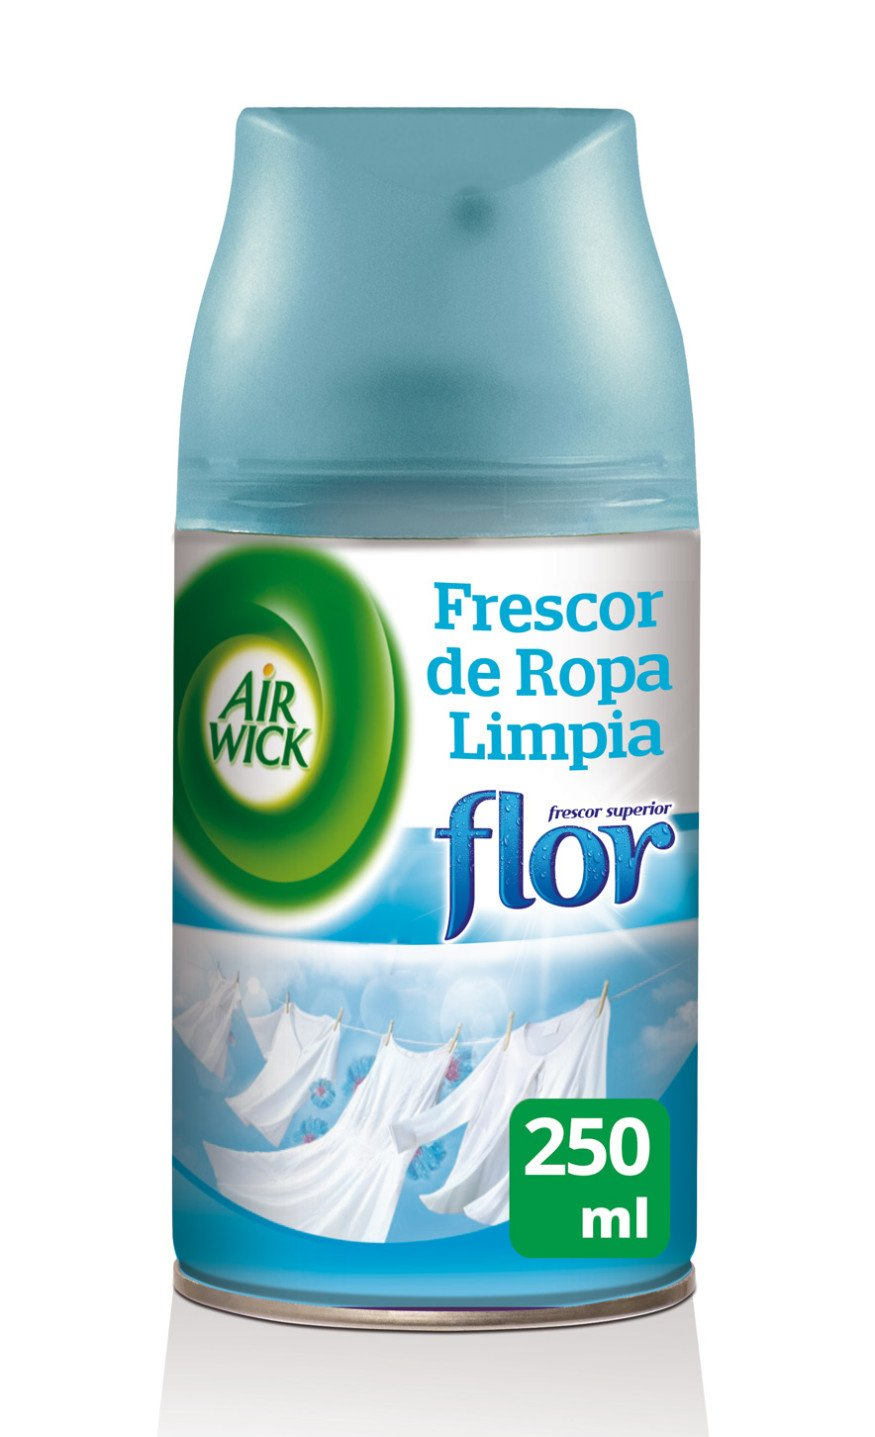 Air Wick Fresh Matic Ricarica Spray Automatico, Seta e Fiori di Luna Reckitt Benckiser IT 8002910028510